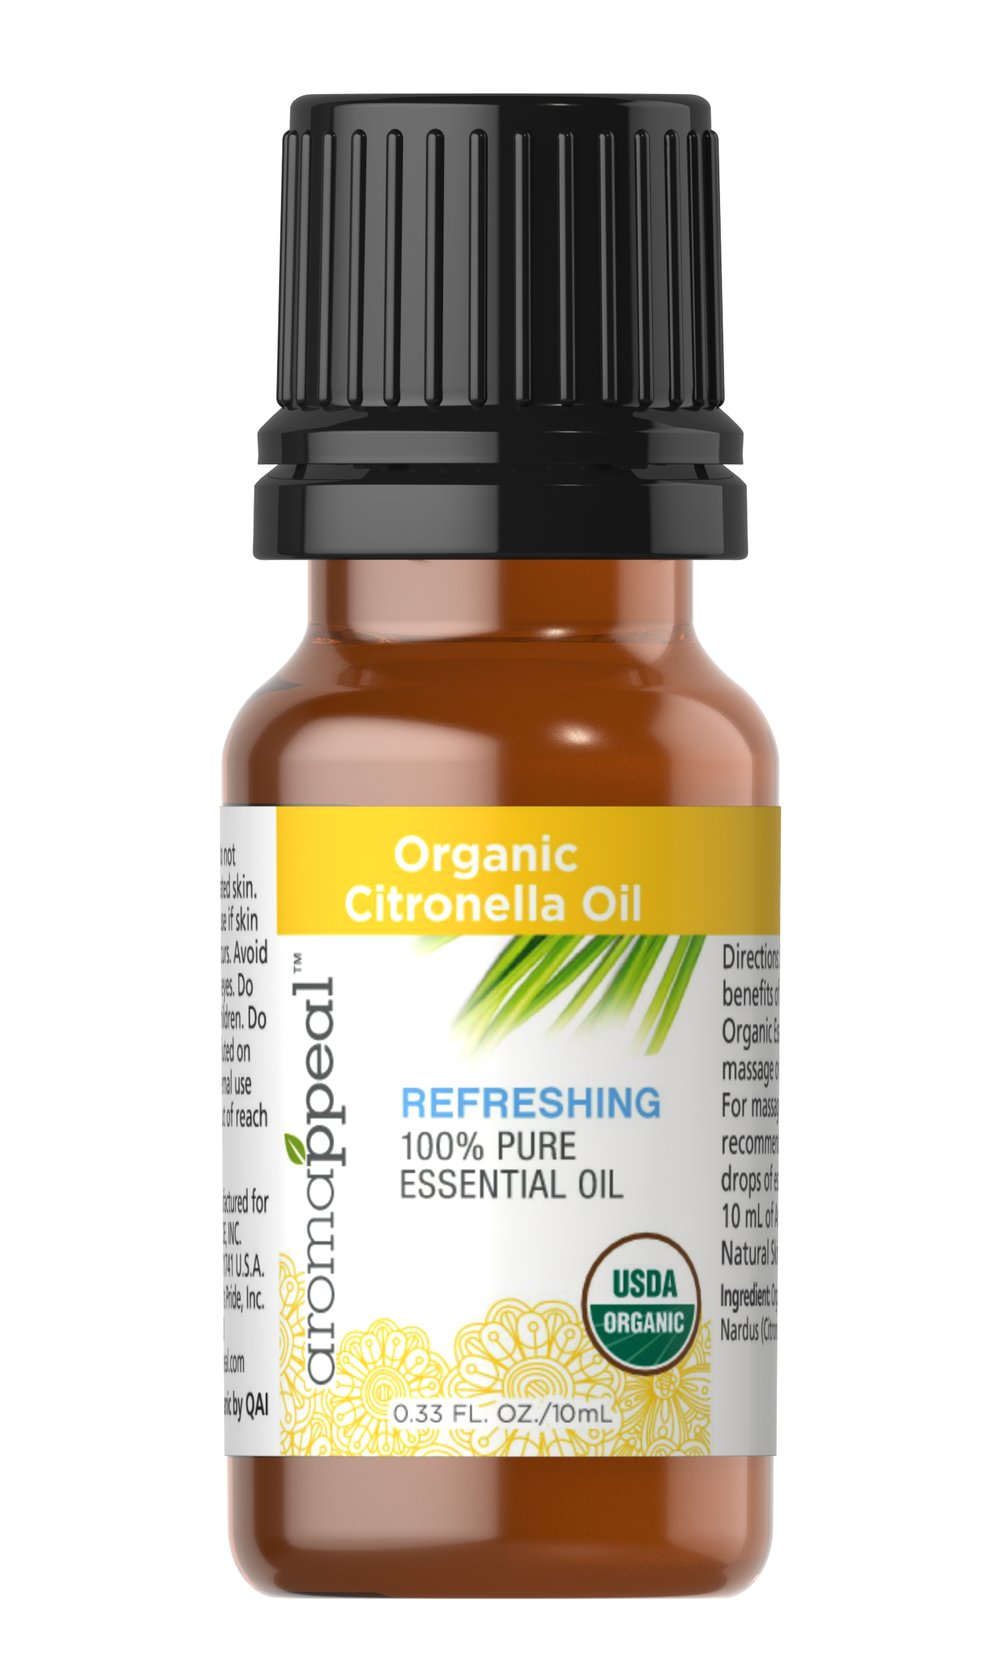 Organic Citronella Oil <p><strong>NEW! Organic Aromappeal - USDA</strong></p><p>With its compelling lemon-like aroma, Our Citronella Oil will stimulate your senses, leaving you feeling cleansed and refreshed.<br /></p><ul><li>    Traditional Uses: Purifying and cleansing, stimulating and uplifting.</li><li>    History: With its compelling lemon-like aroma,  Citronella